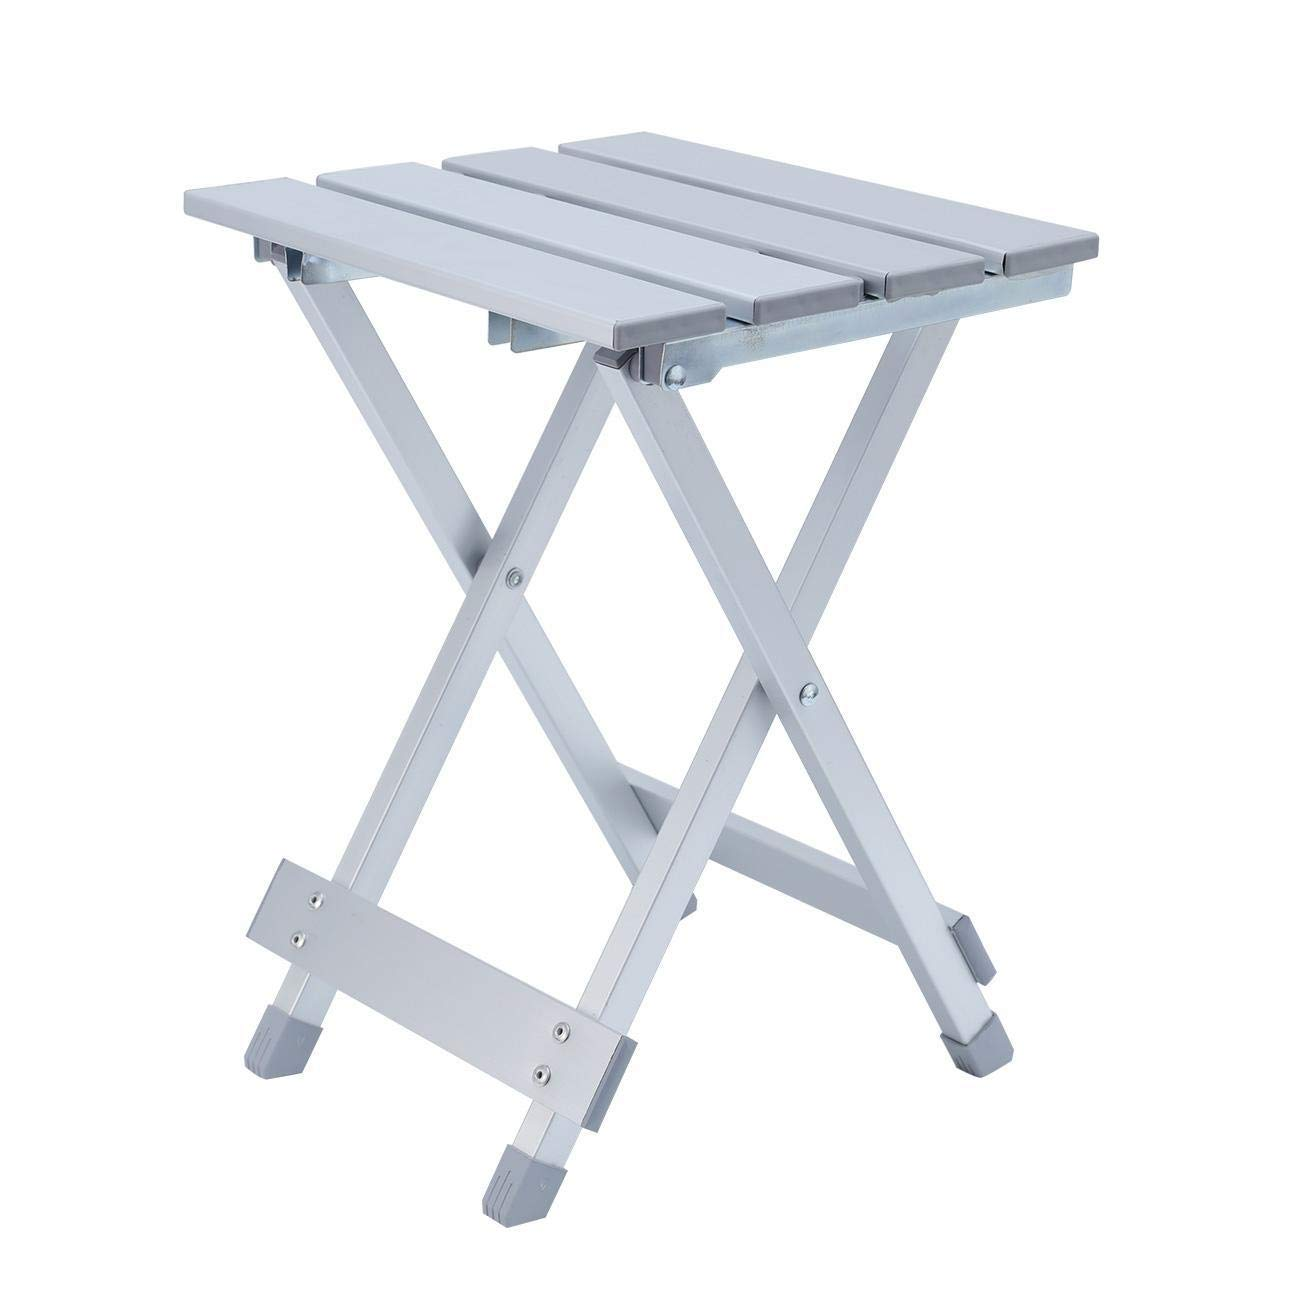 Dyna-Living Portable Camping Side Tables with Aluminum Table Top for Picnic, Camp, Beach, Boat, Useful for Dining & Cooking with Burner